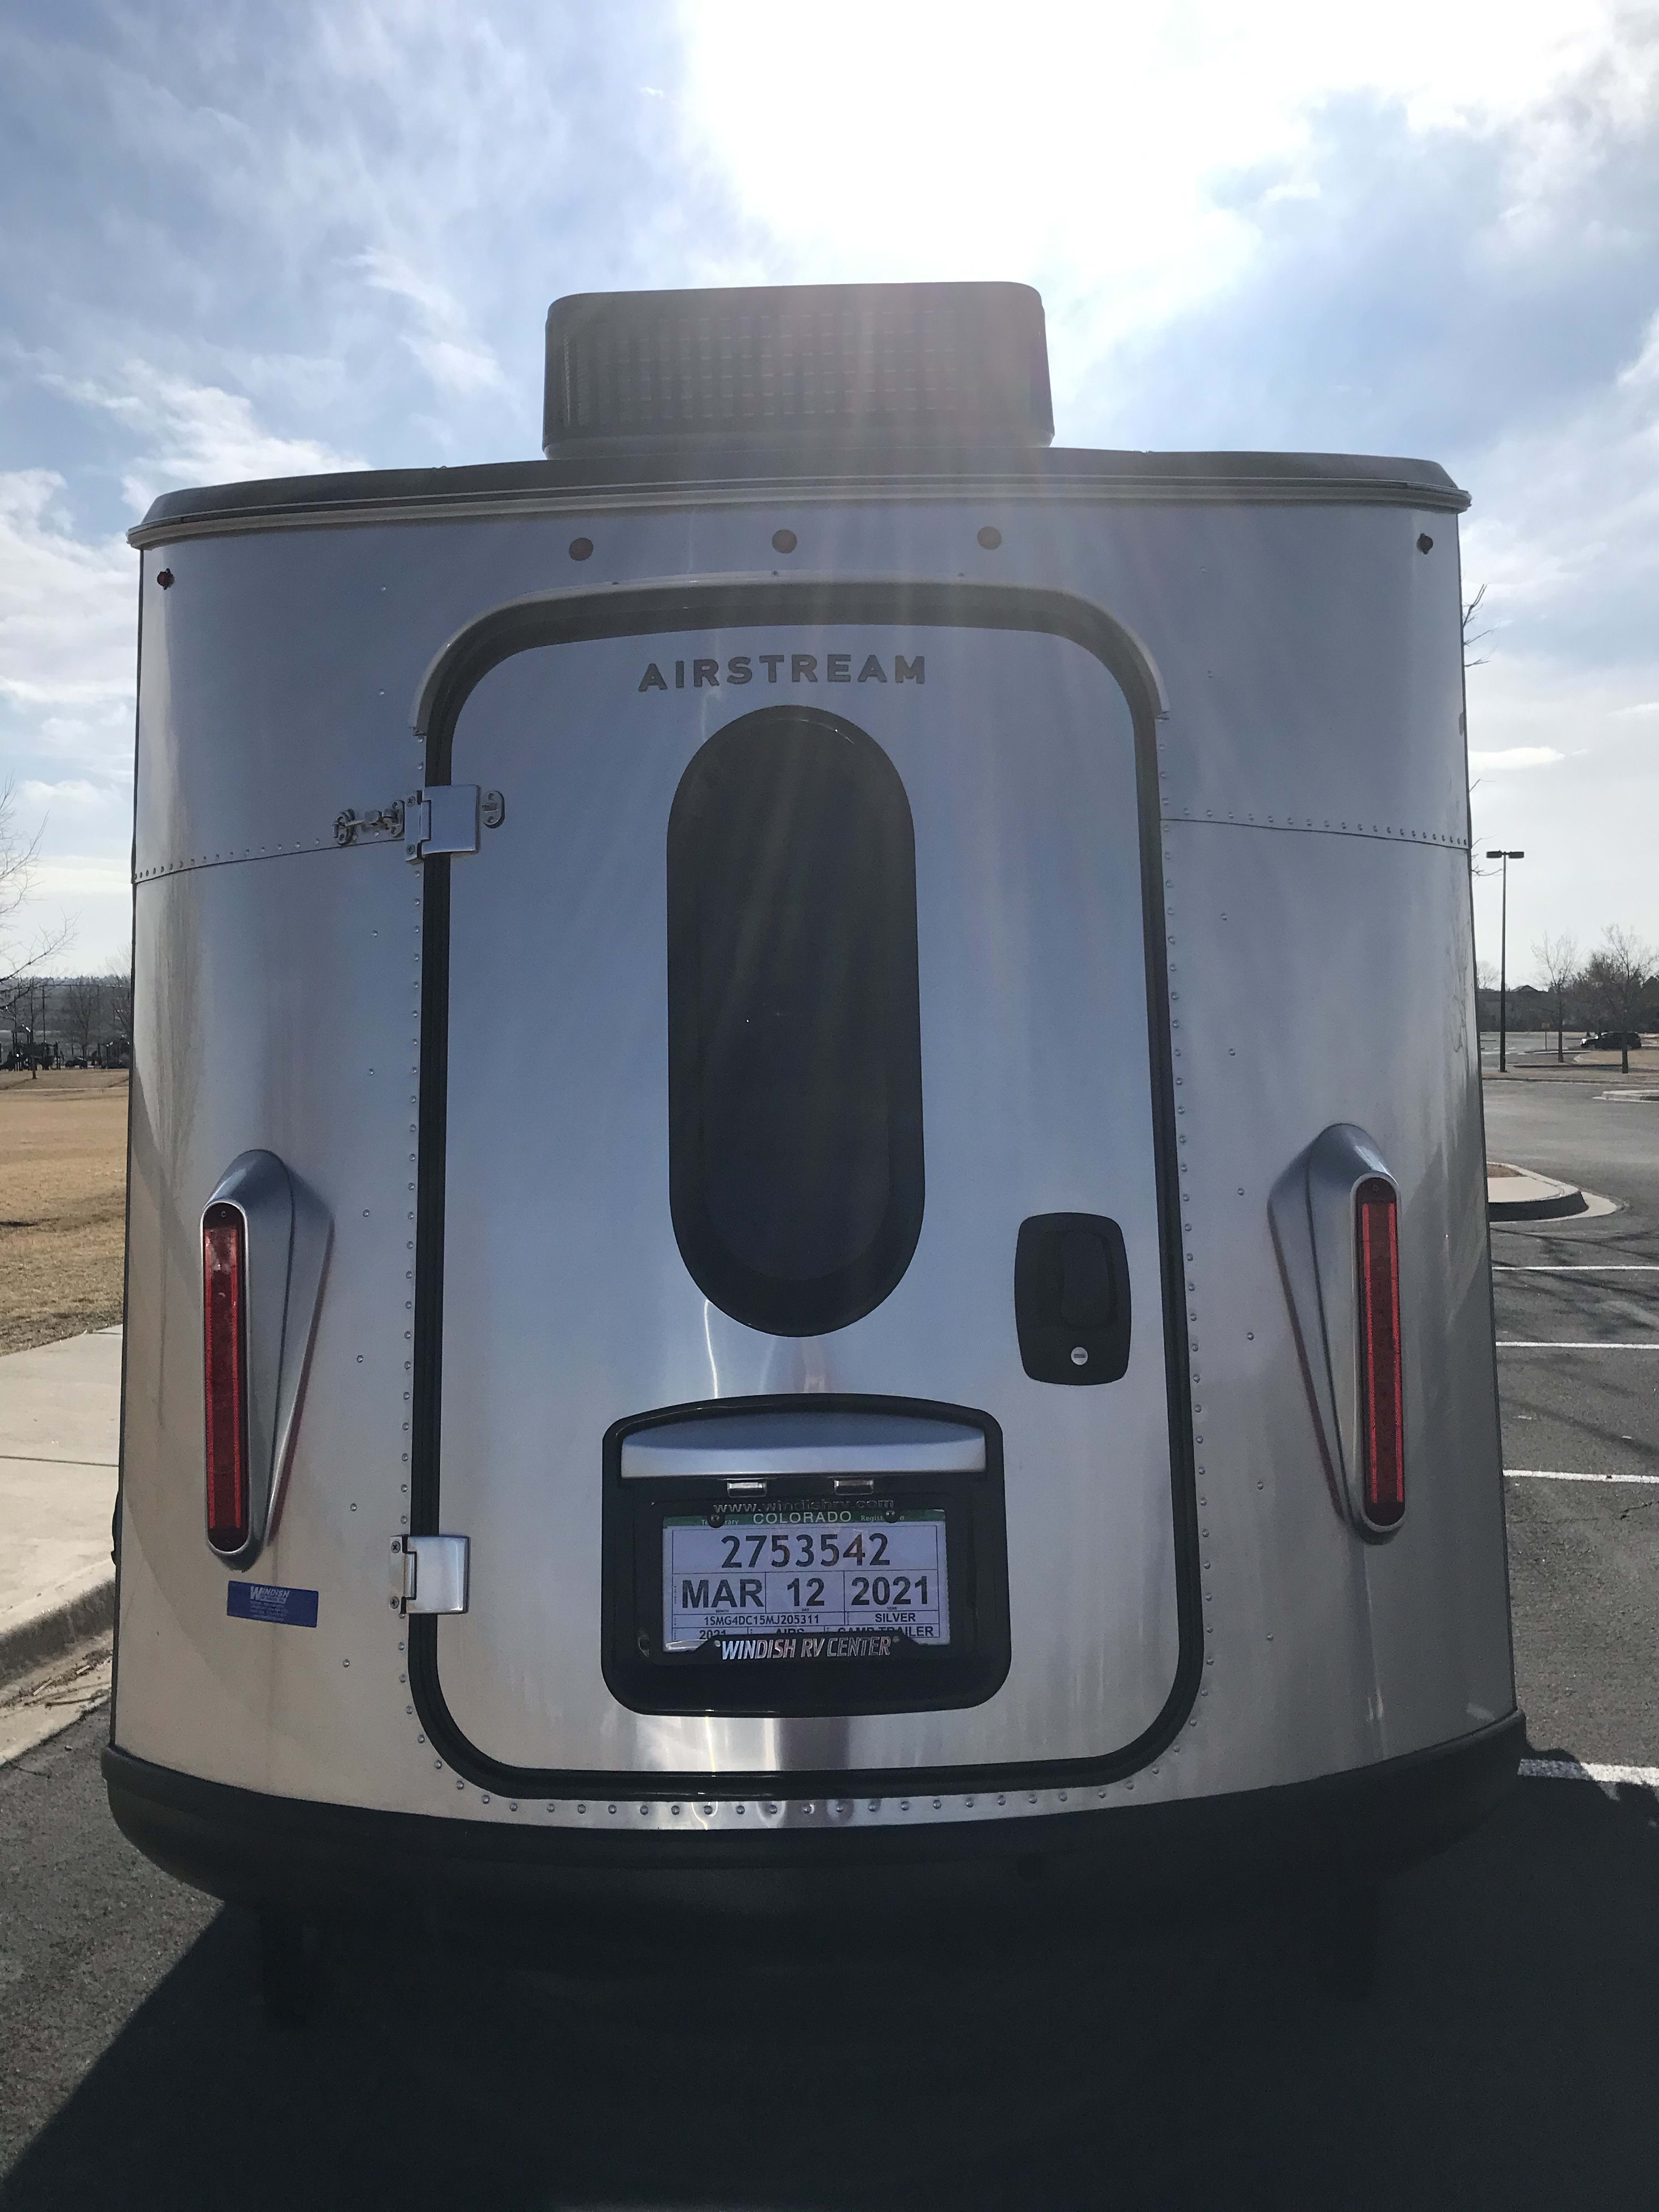 The back door is good for loading gear or allowing for a cross breeze. . Airstream Base Camp 2021